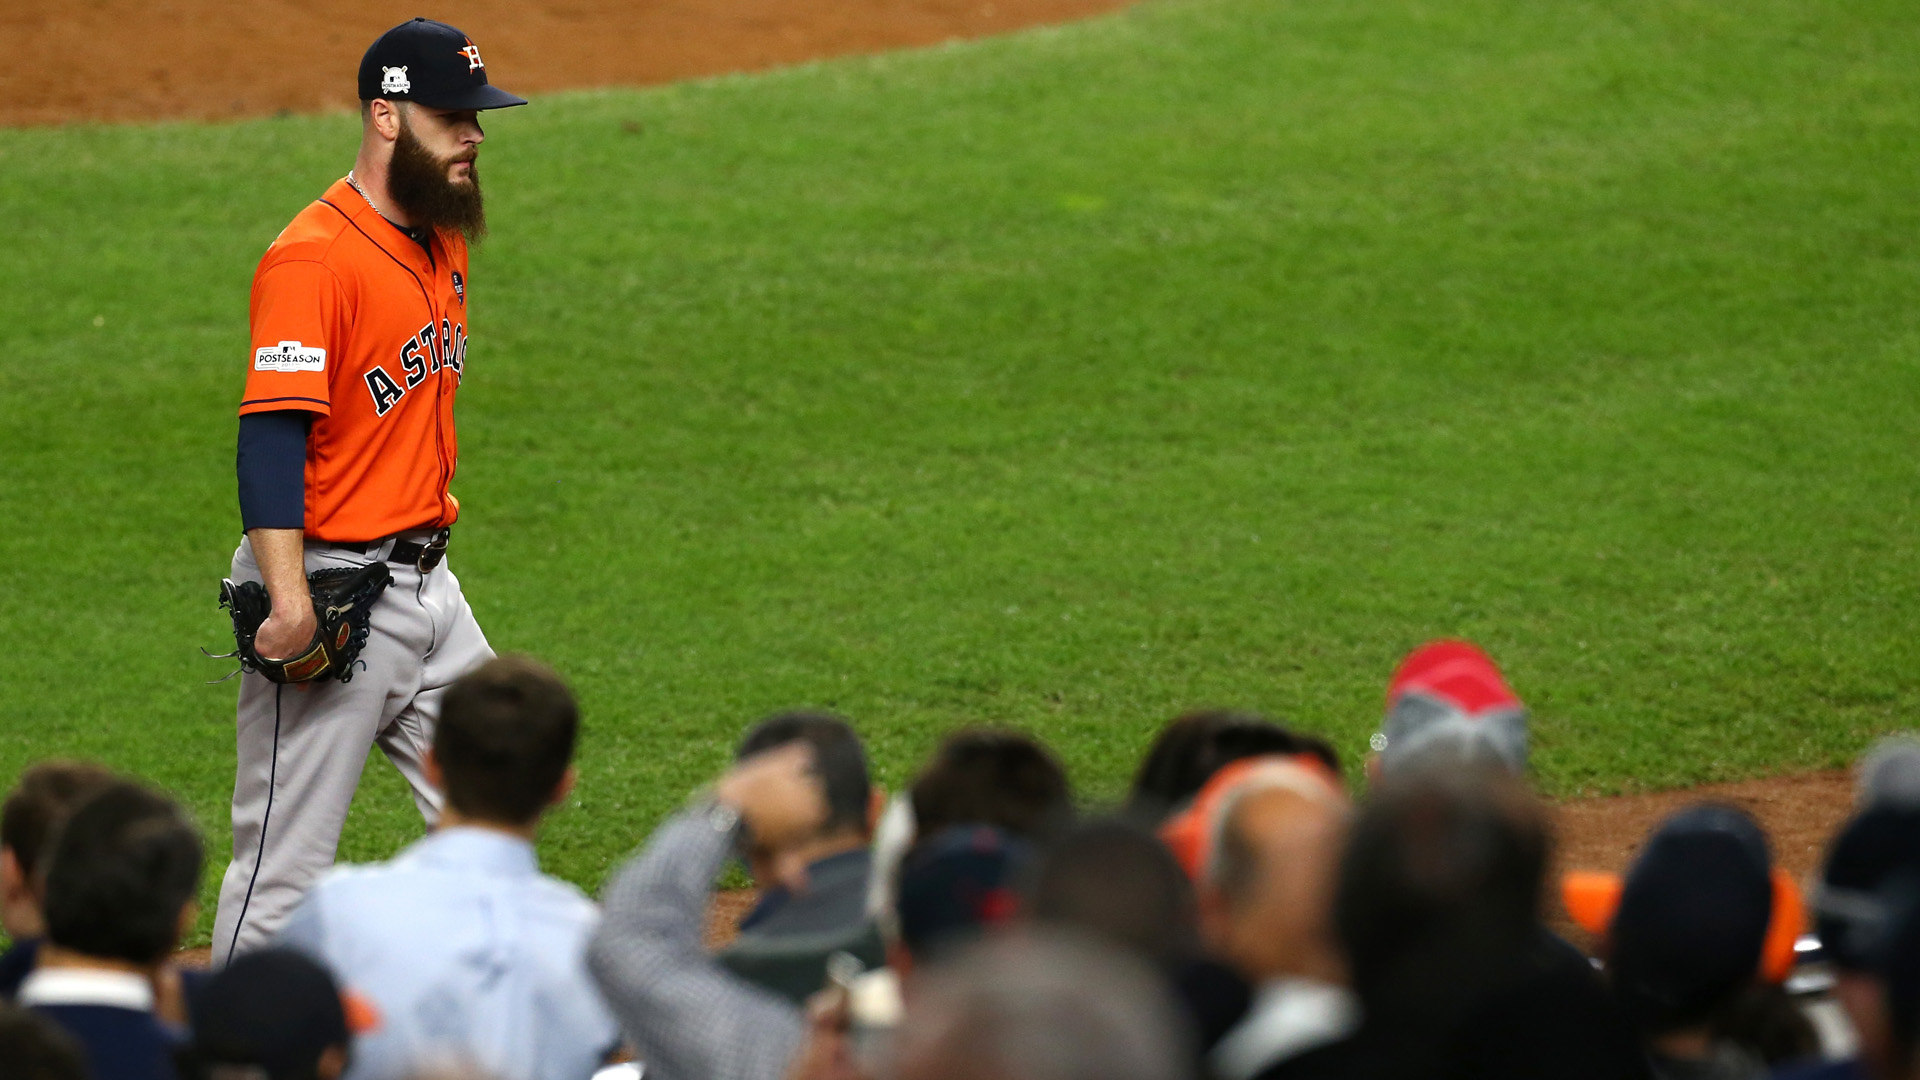 Astros' Dallas Keuchel pitched two months with foot injury, report says